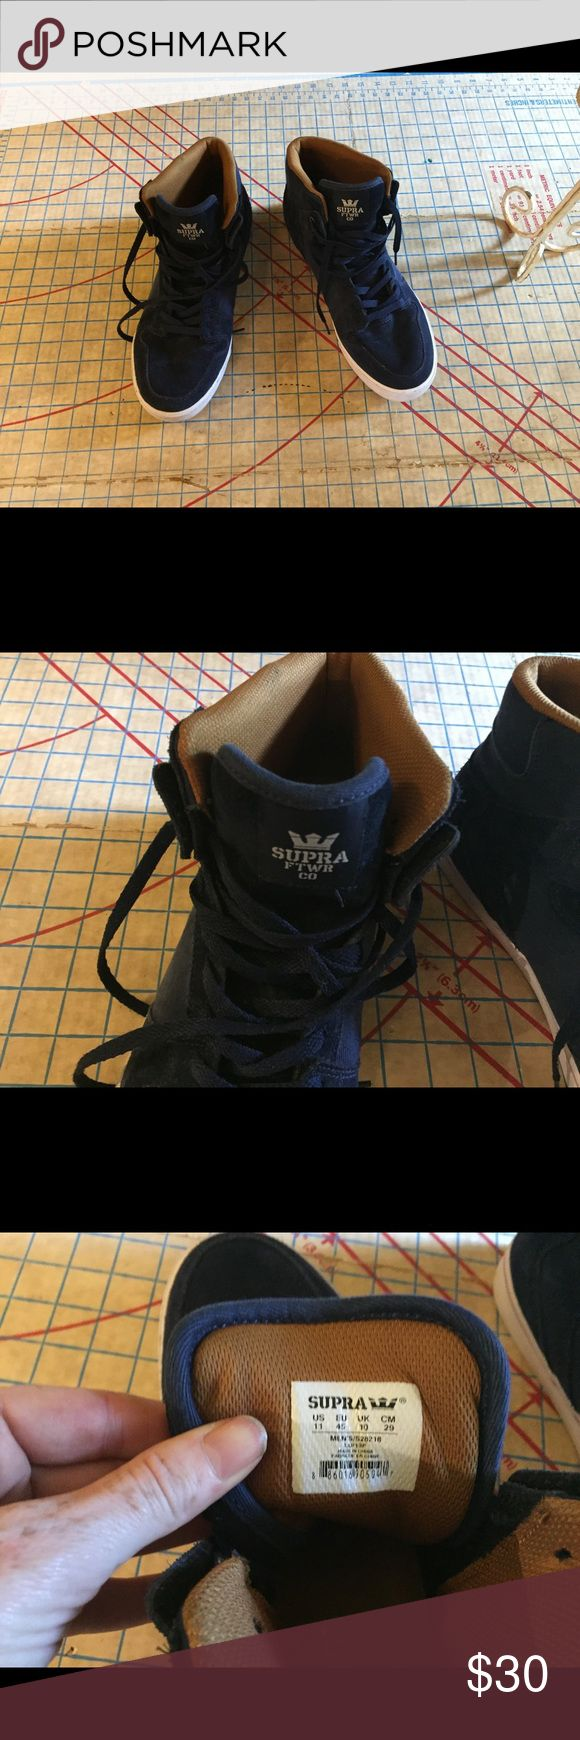 Supra high tops size 11 In great condition blue suede Supra high tops size 11. Worn just a couple times. Take a look at pics. No flaws or issues. Supra Shoes Sneakers